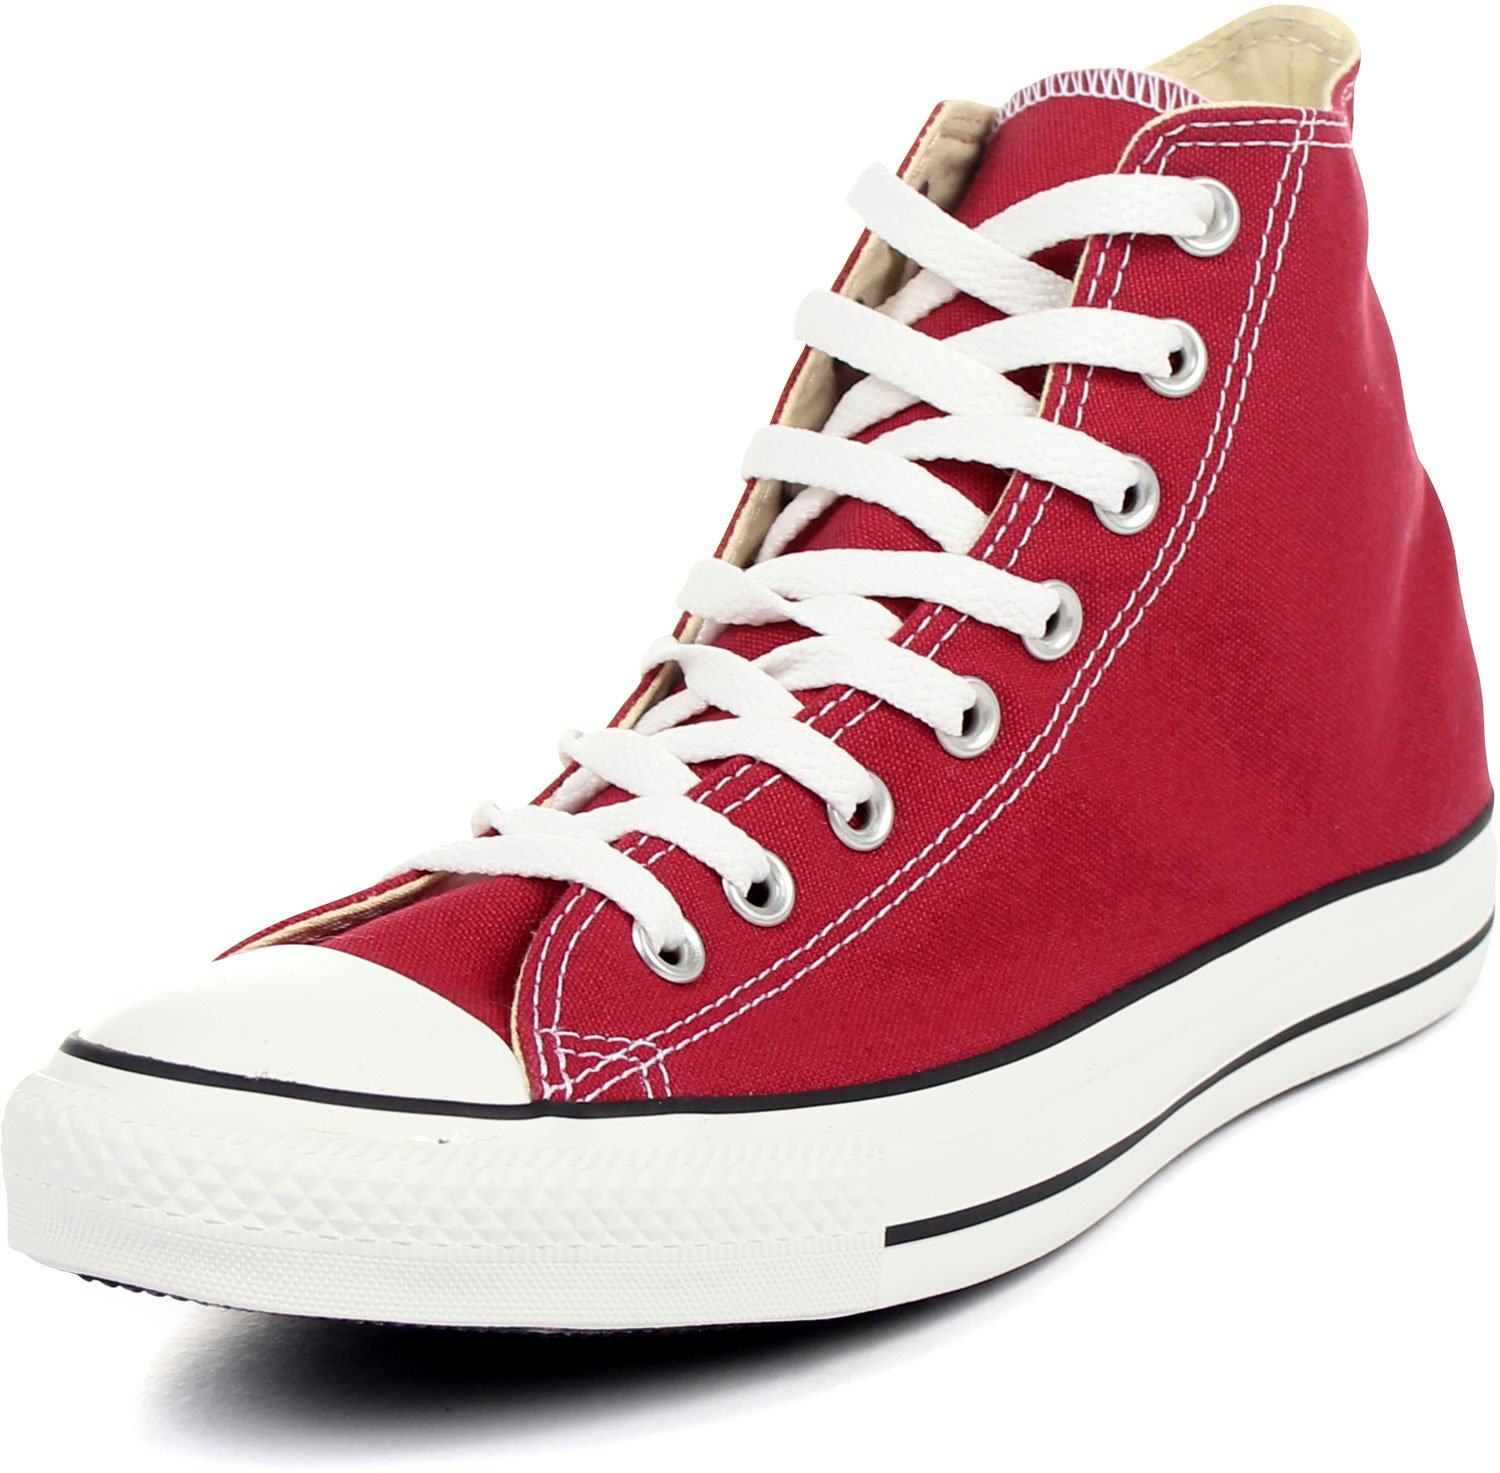 7d781640d2bbf0 Galleon - Converse Unisex Chuck Taylor Classic Hi Jester Red Sneaker - 11  Men - 13 Women